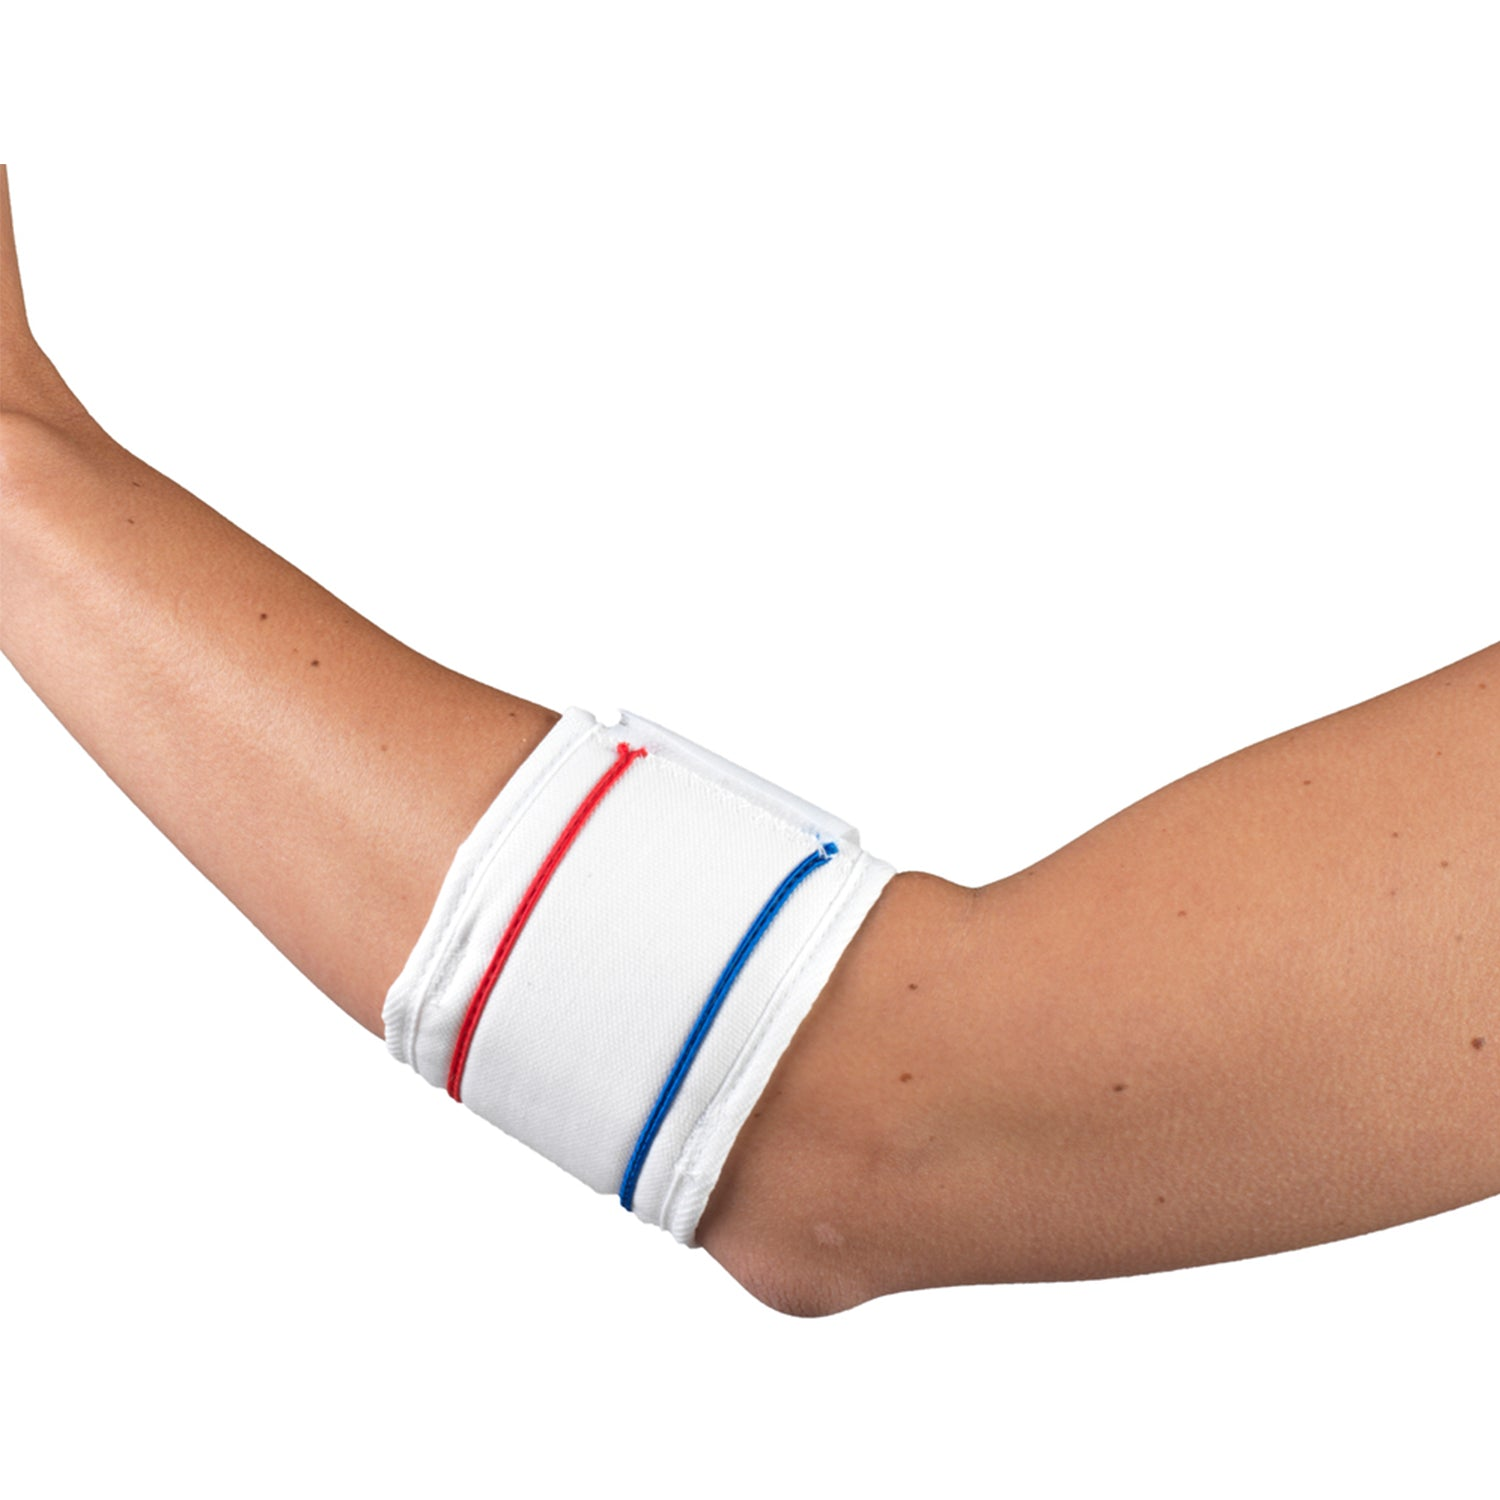 WHITE TENNIS ELBOW STRAP